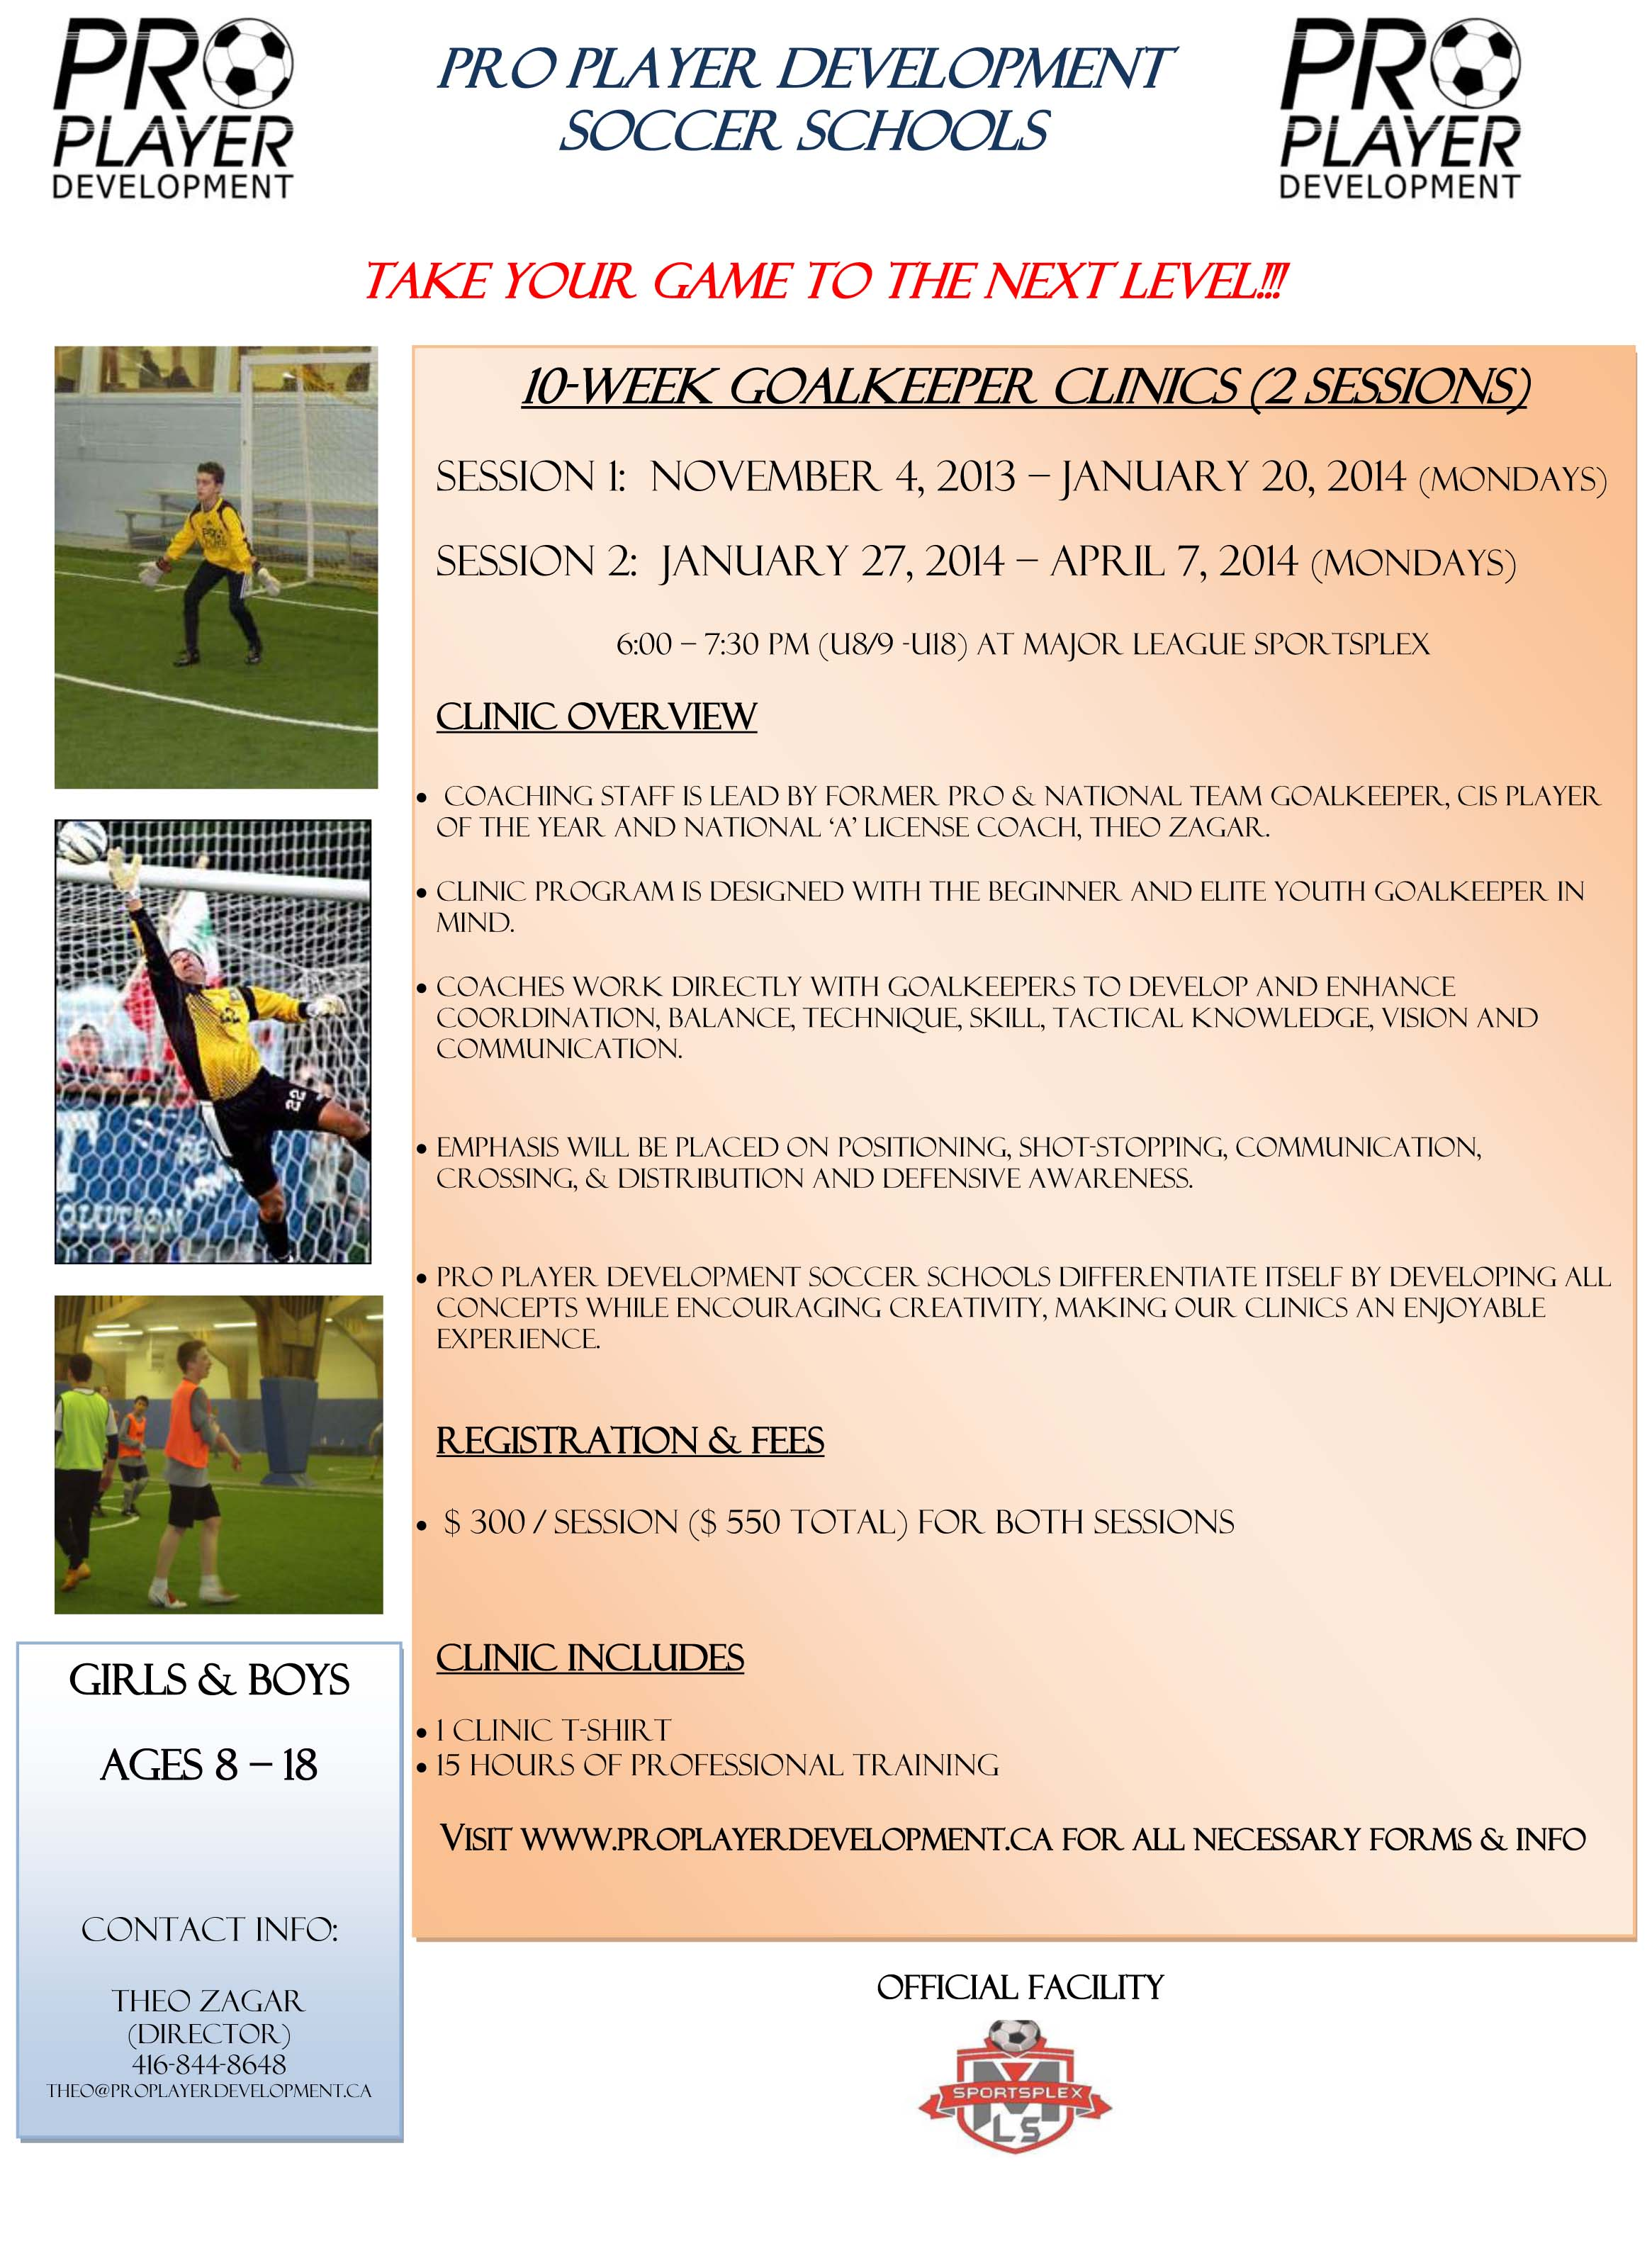 PPD-GK-CLINIC-2013-14